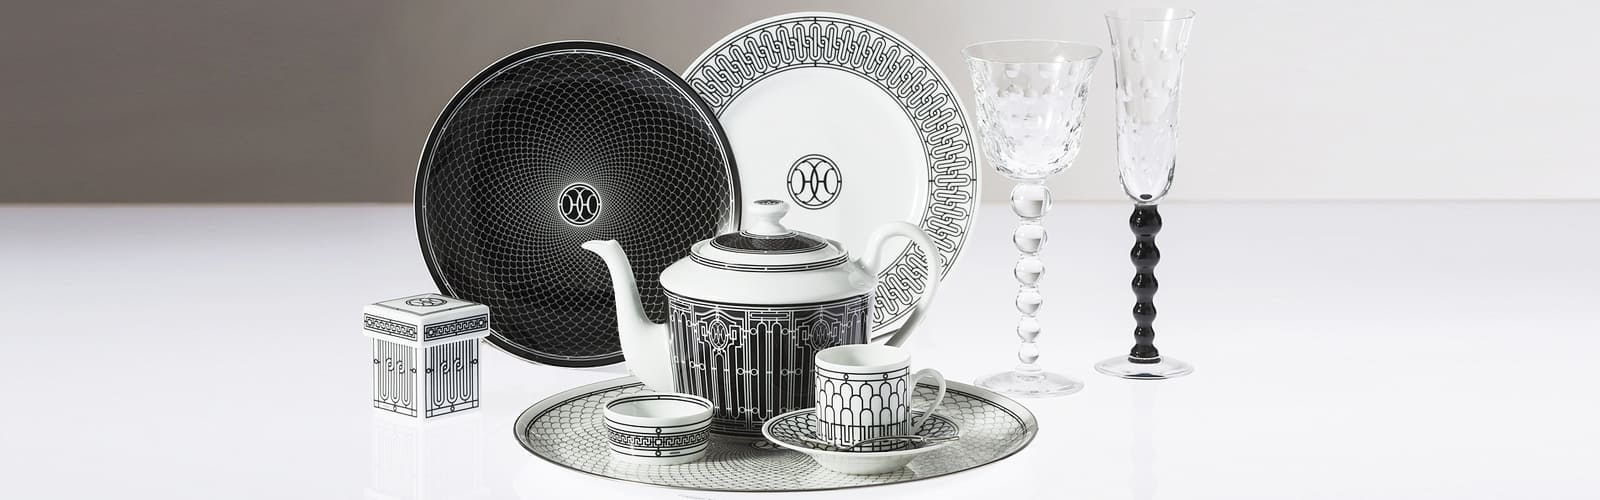 The contemporary dinnerware of Hermes